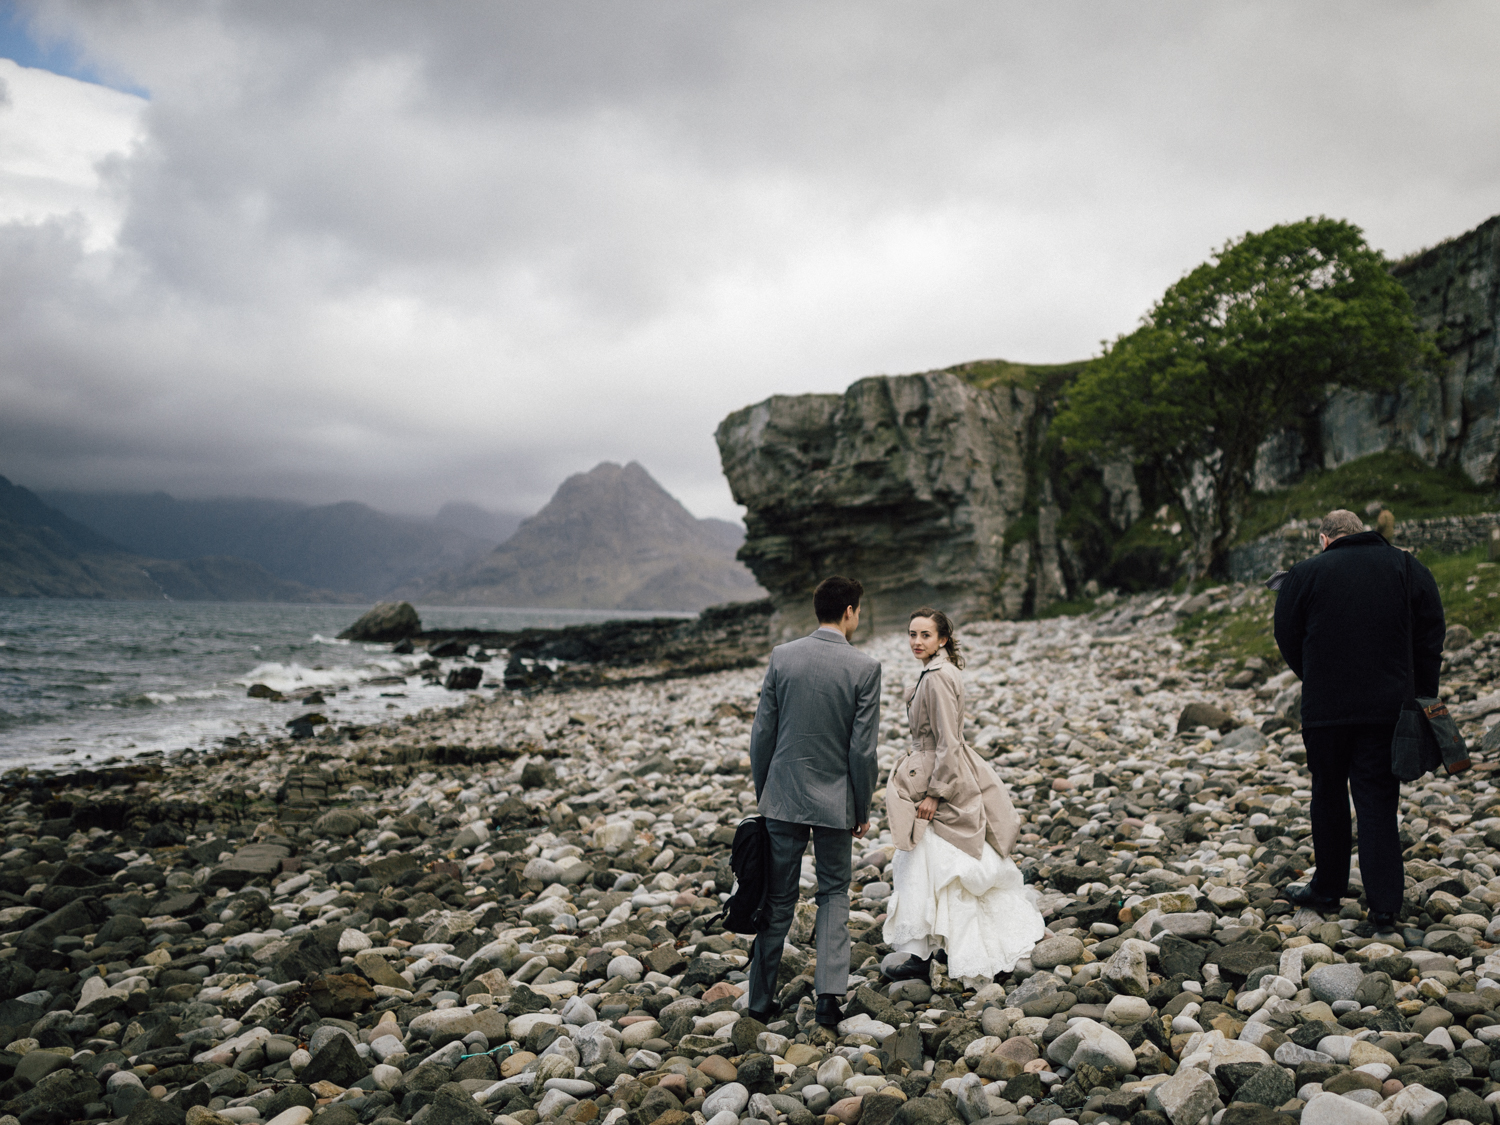 capyture-wedding-photographer-destination-elopement-isle-skye-scotland-146